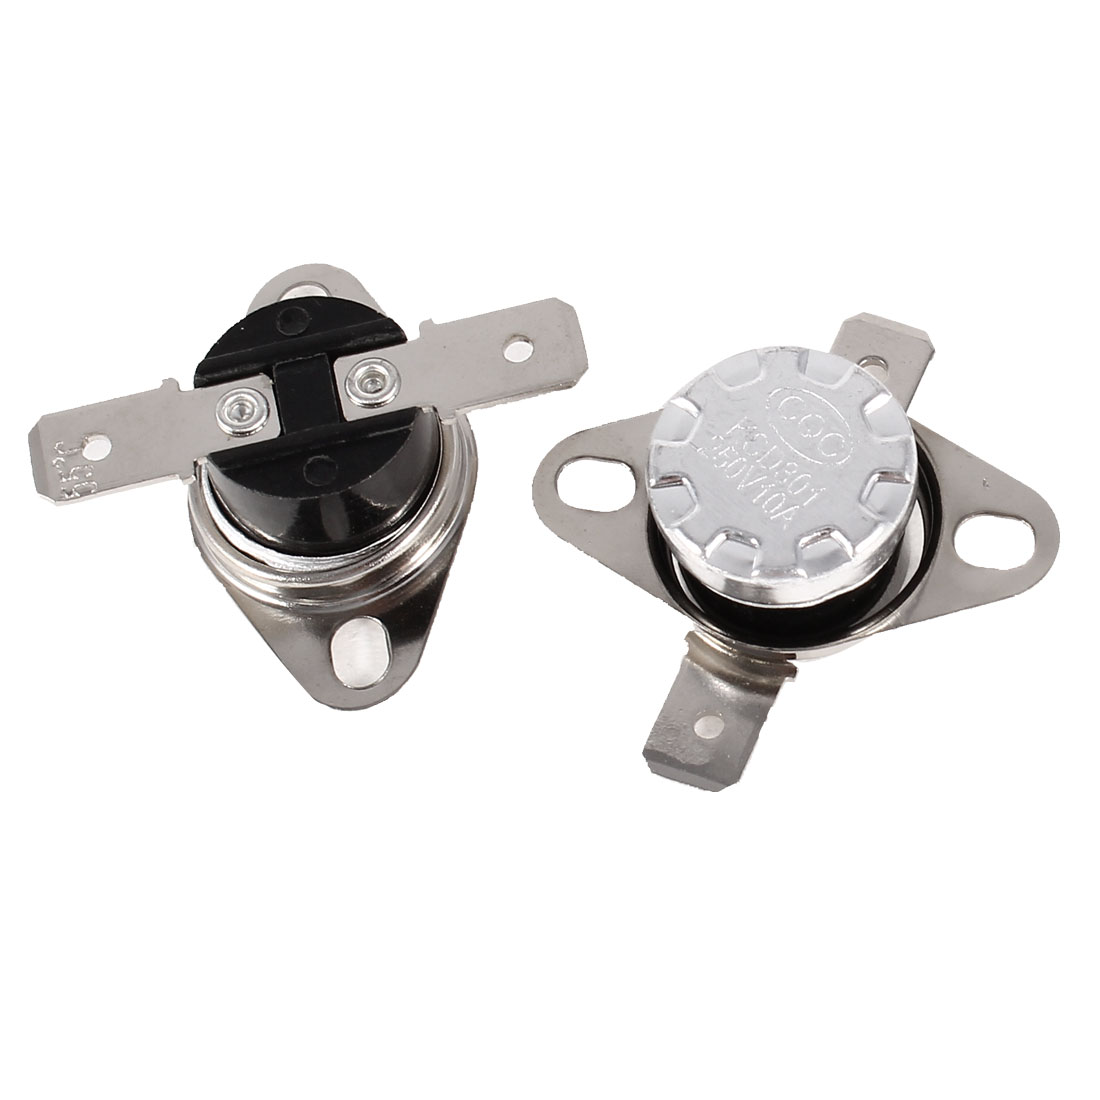 2 Pcs NC Normal Close Thermostat Temperature Controlled Switch KSD301 55C AC 250V/10A